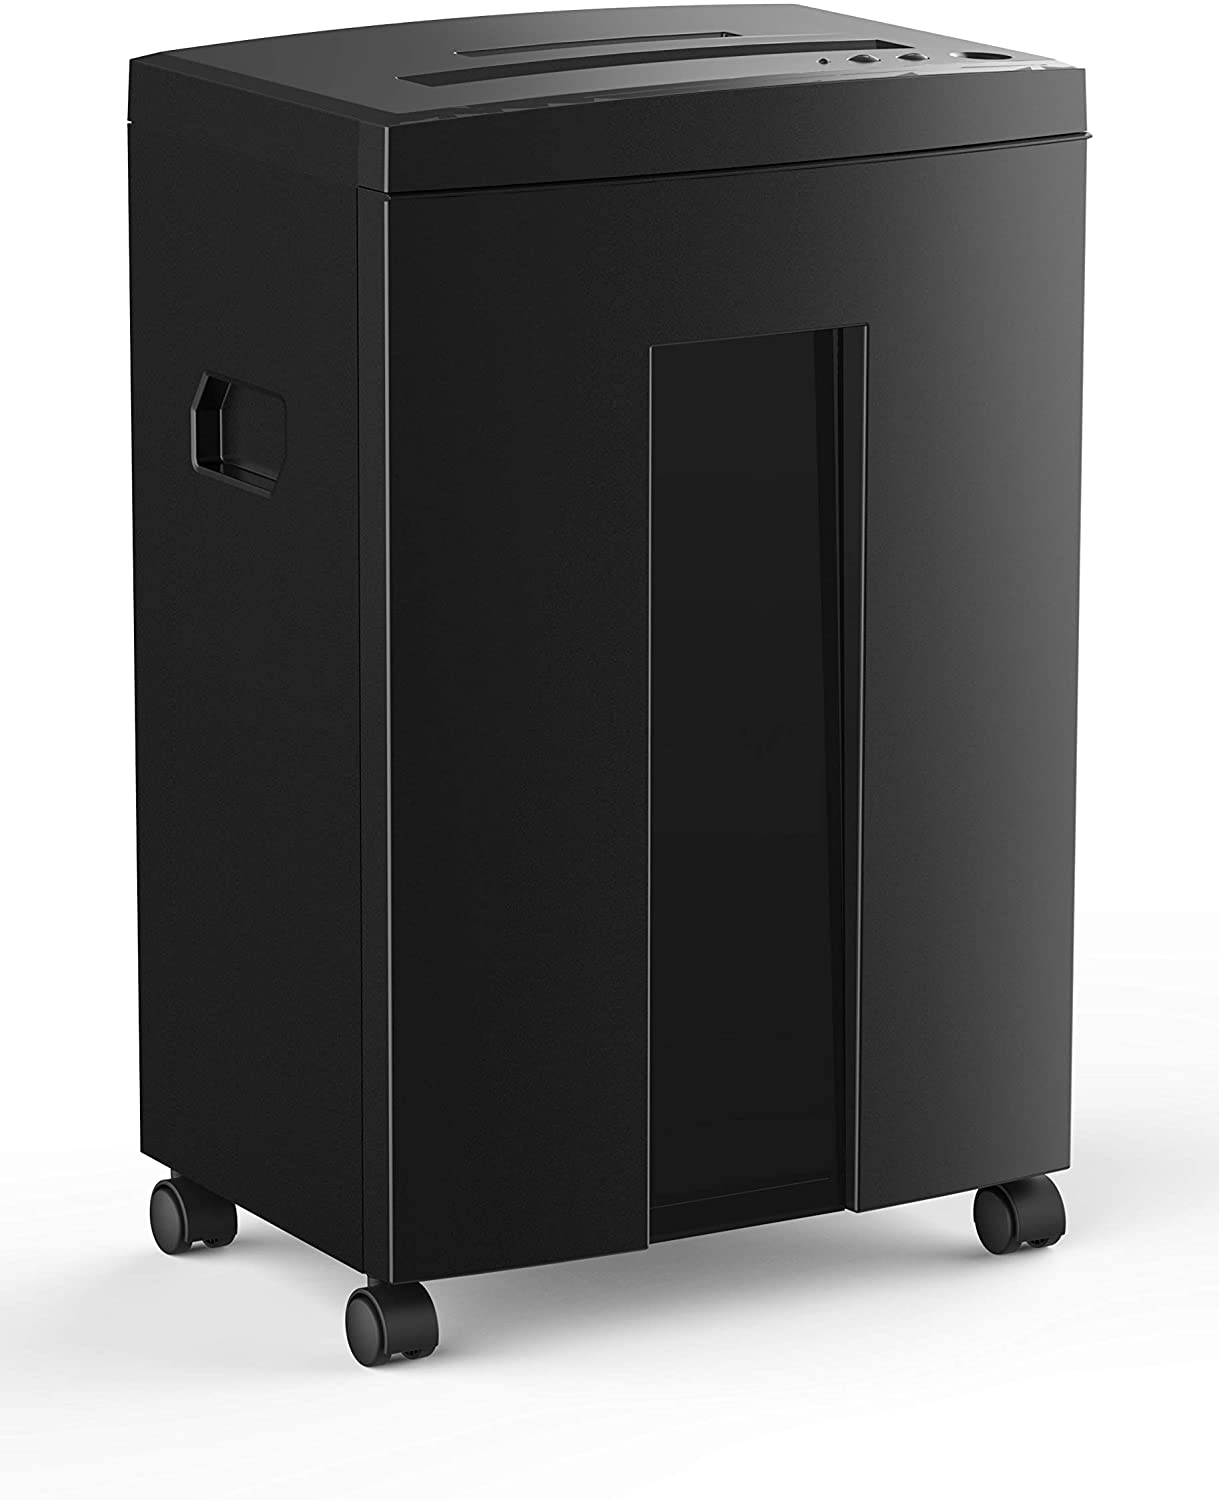 WOLVERINE 18-Sheet 60 Mins Running Time Cross Cut High Security Level P-4 Heavy Duty Paper/CD/Card Ultra Quiet Shredder for Home Office with 6 Gallons Pullout Waste Bin SD9113(Black ETL)